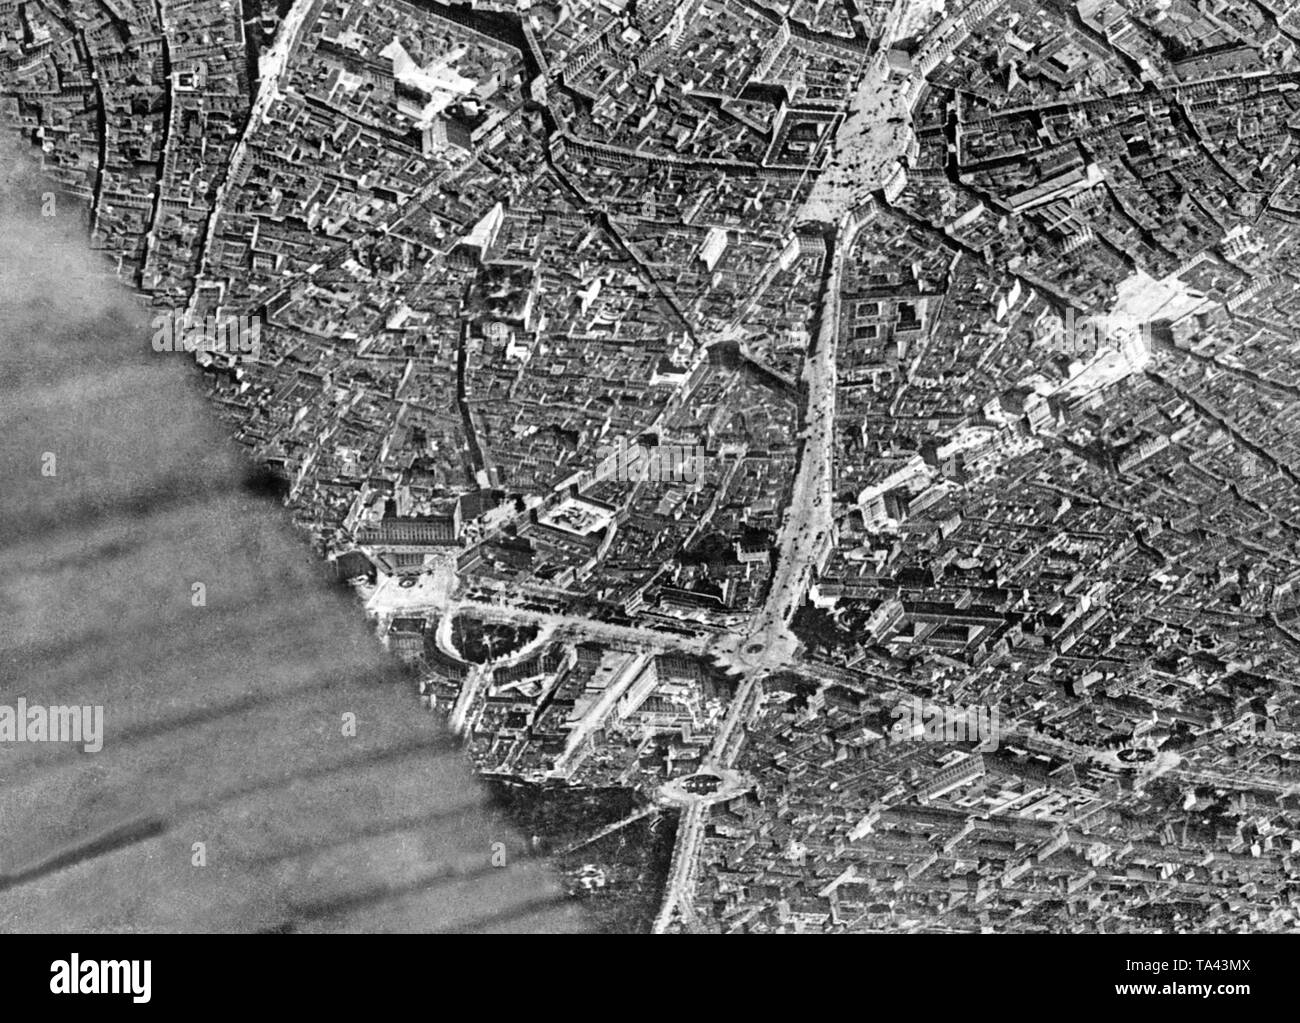 Aerial photo of the center of Madrid during the Spanish Civil War on November 9, 1936. Below in the center, the Puerta del Sol, right next to it, the Gran Via, which was still under construction. Above in the center, the Plaza de Cibeles with the Town Hall of Madrid (white, towers) and the Puerta de Alcala with the gate at the entrance to the Retiropark. To the left, the Plaza del Colon, on the right, the Plaza de la Lealtad with the Madrid Stock Exchange. Covered by the wing: the Prado. - Stock Image